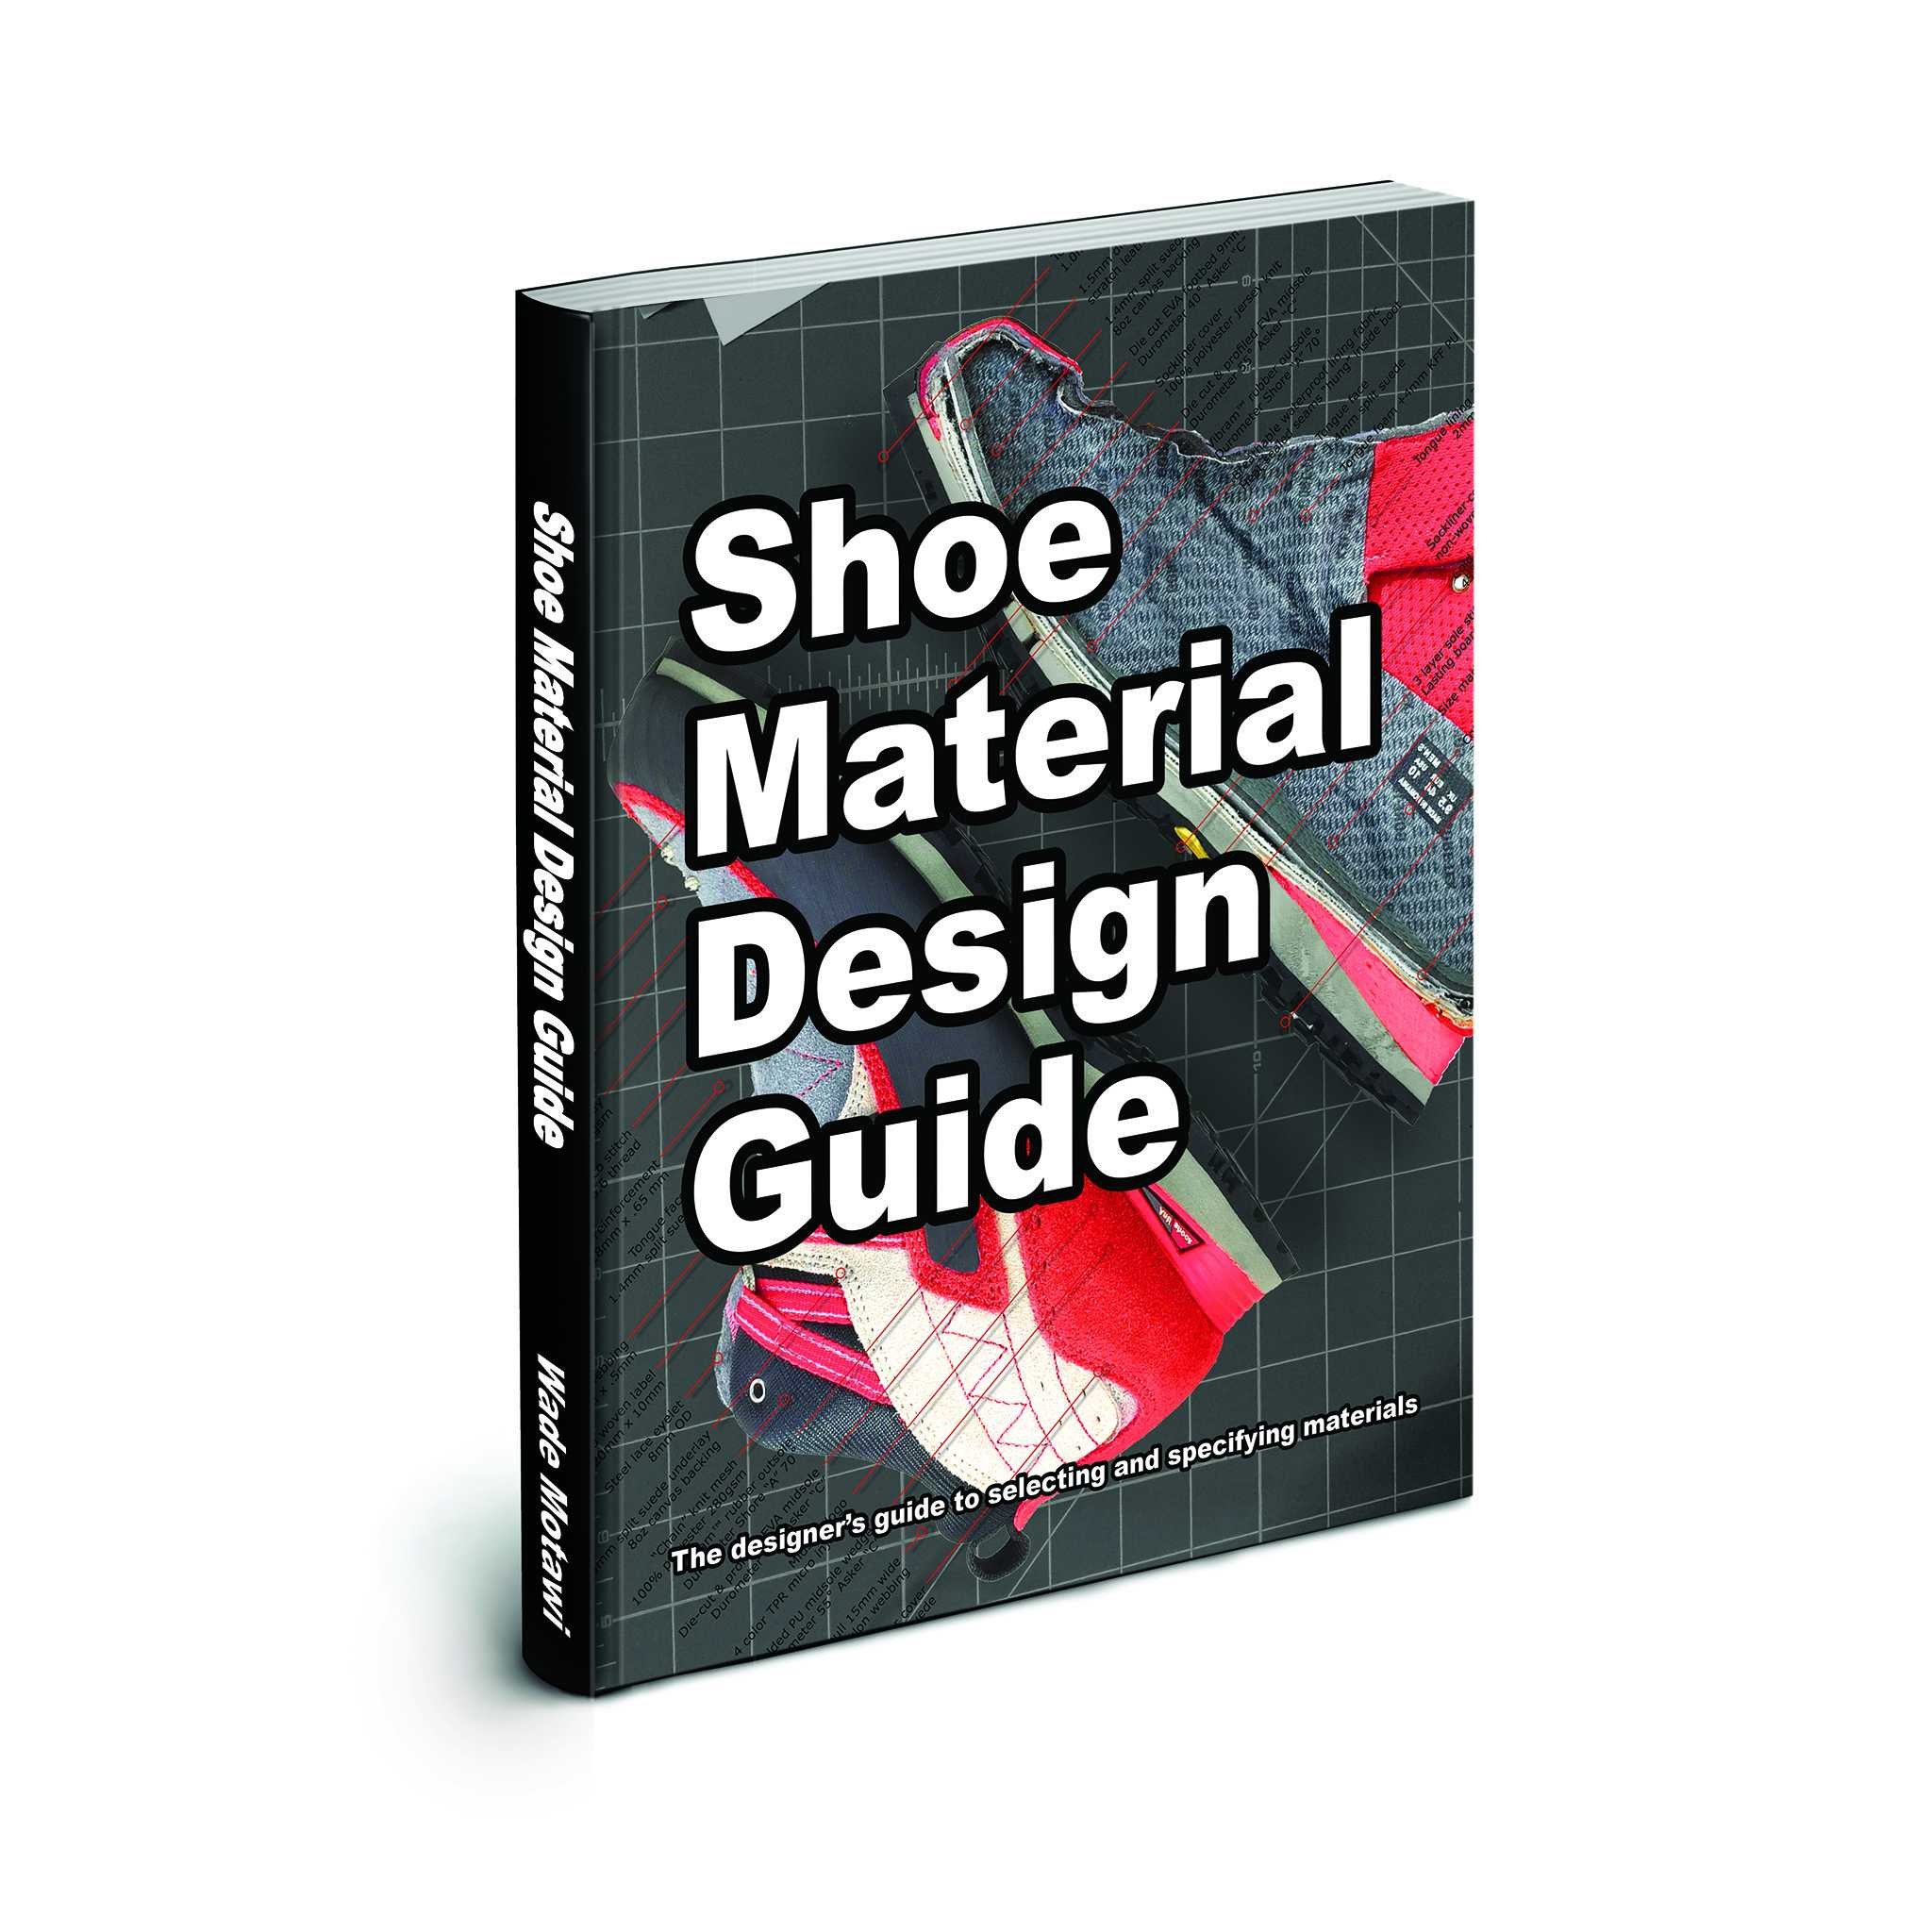 Shoe Material Design Guide